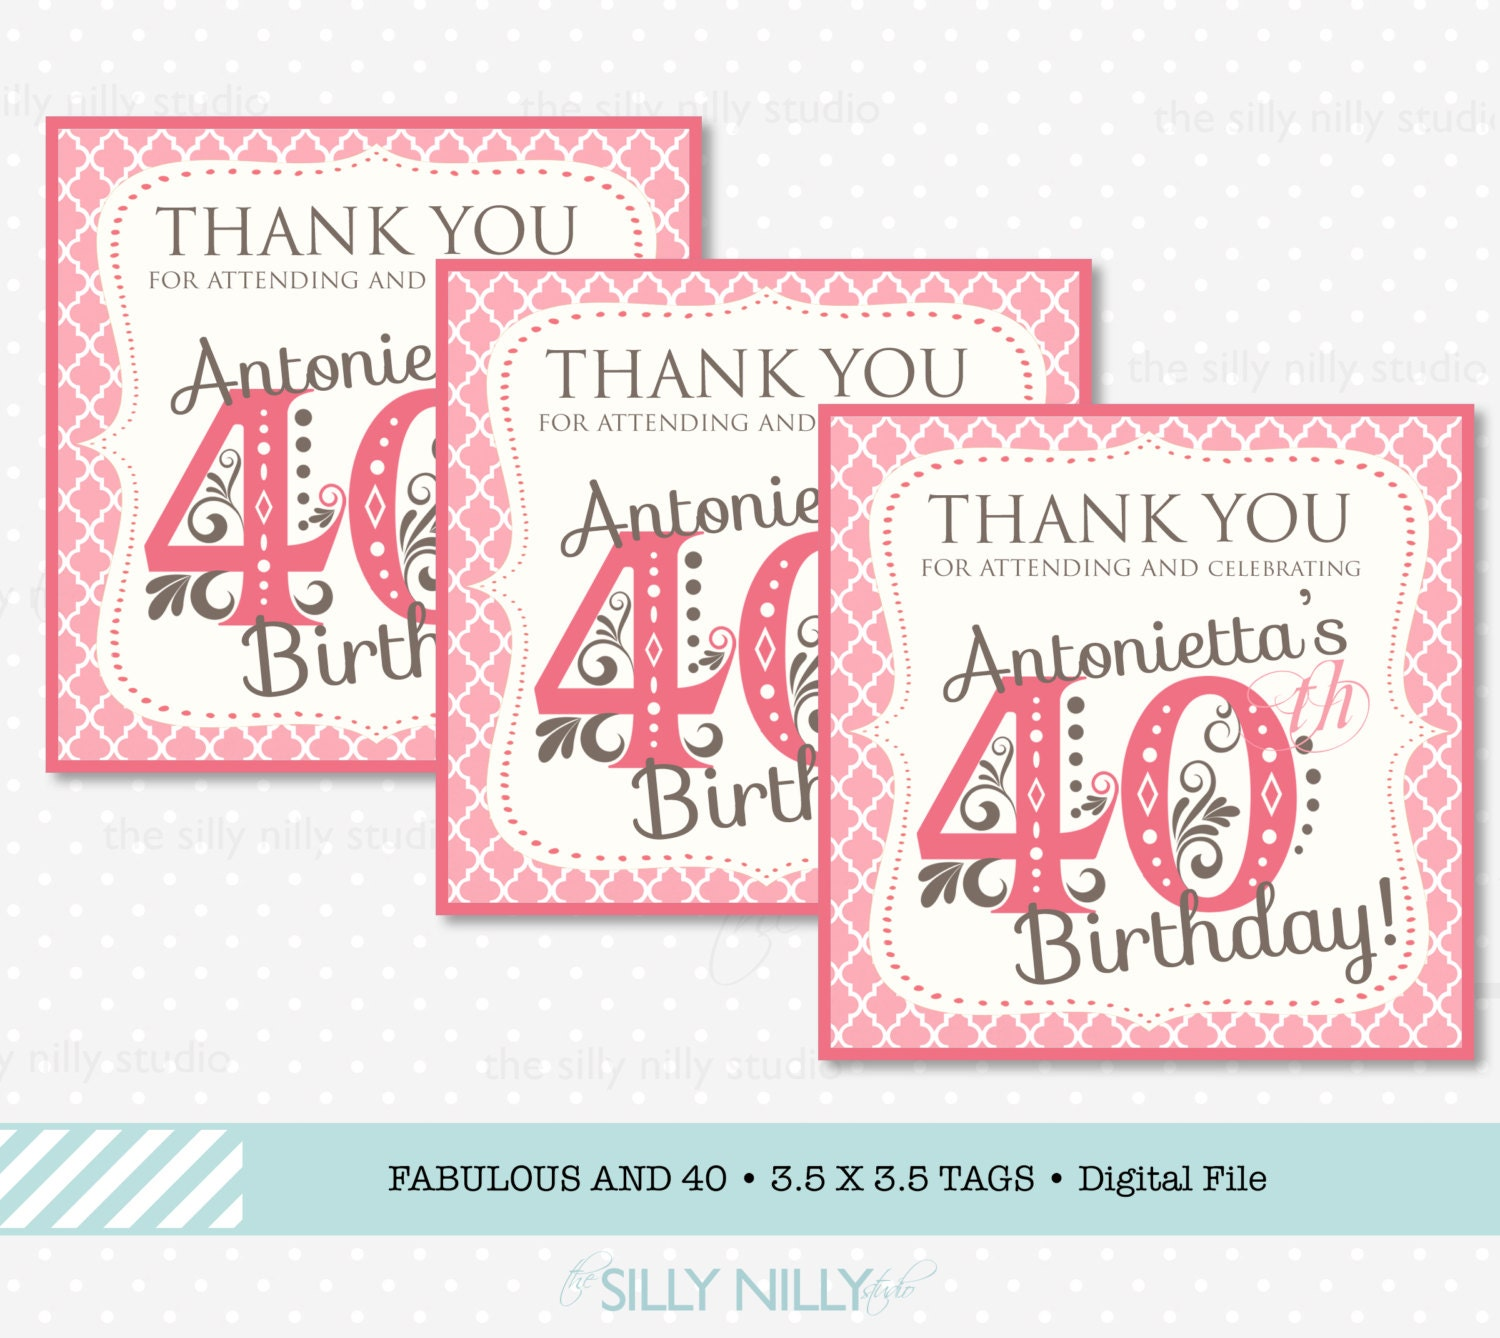 It is a picture of Peaceful 40 Bags in 40 Days Printable